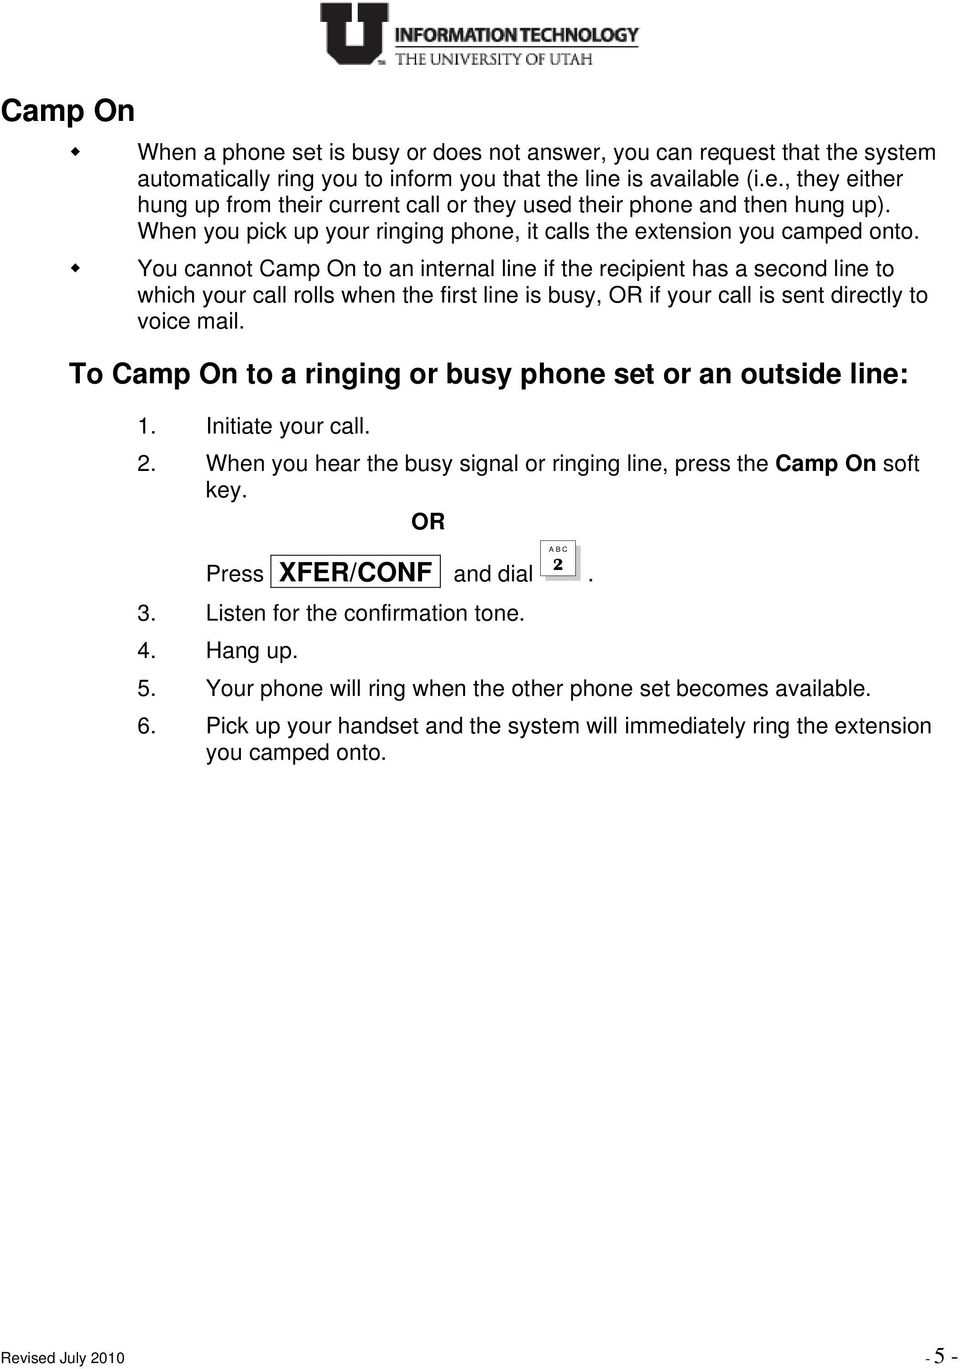 You cannot Camp On to an internal line if the recipient has a second line to which your call rolls when the first line is busy, OR if your call is sent directly to voice mail.